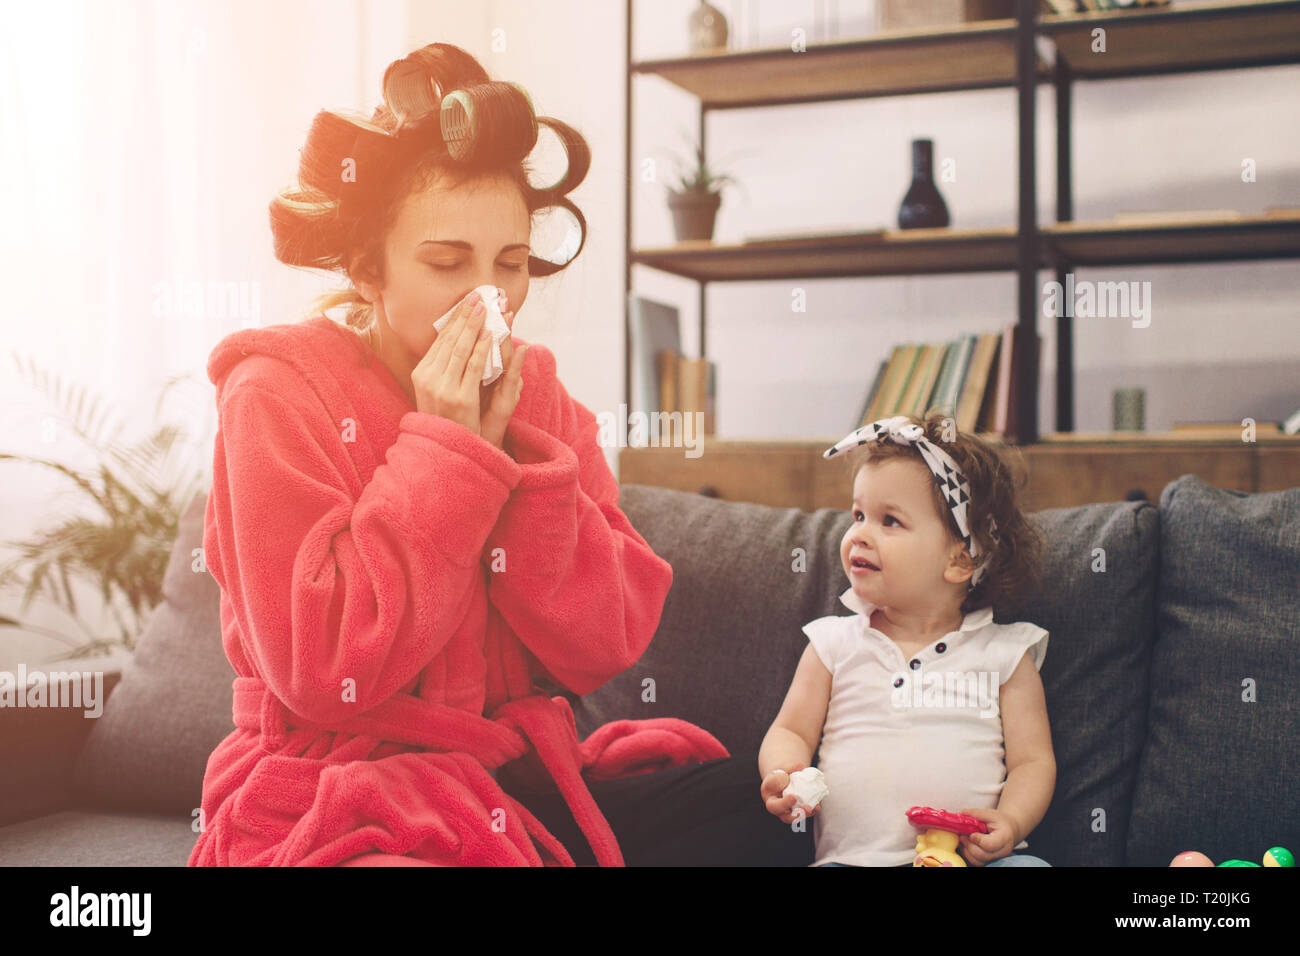 Young mother old is experiencing postnatal depression. Sad and tired woman with PPD. She does not want to play with her daughter. The woman is sick an - Stock Image